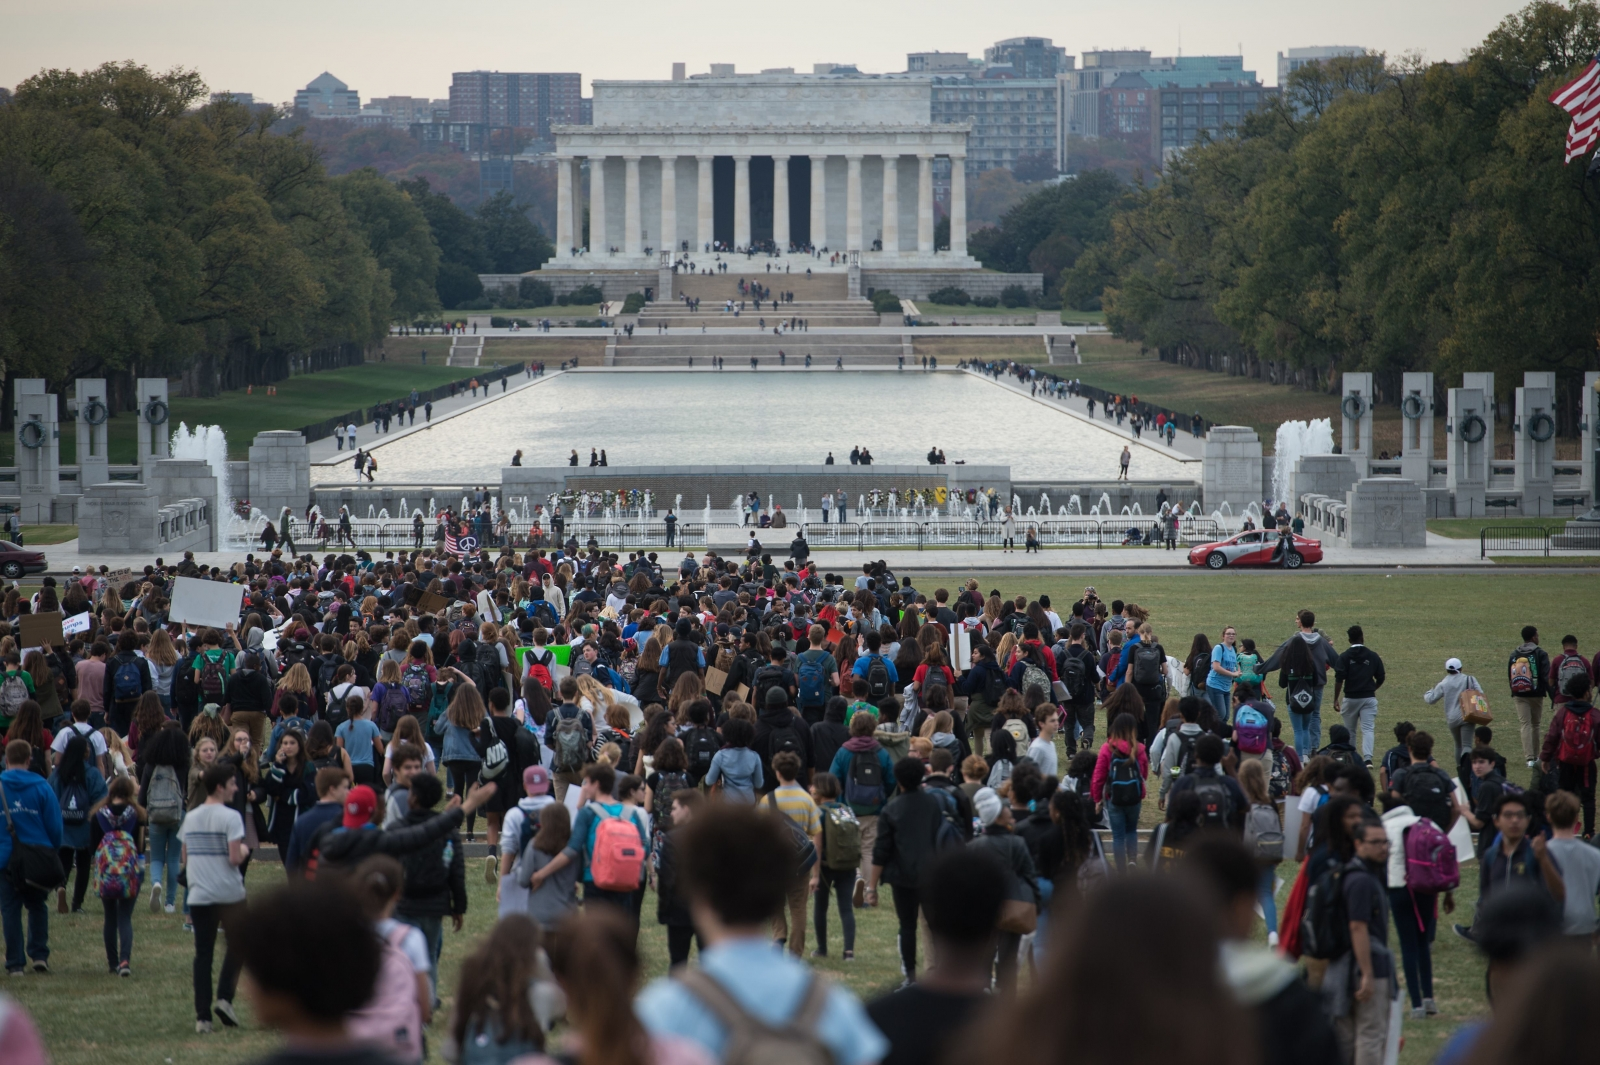 Lincoln memorial protests